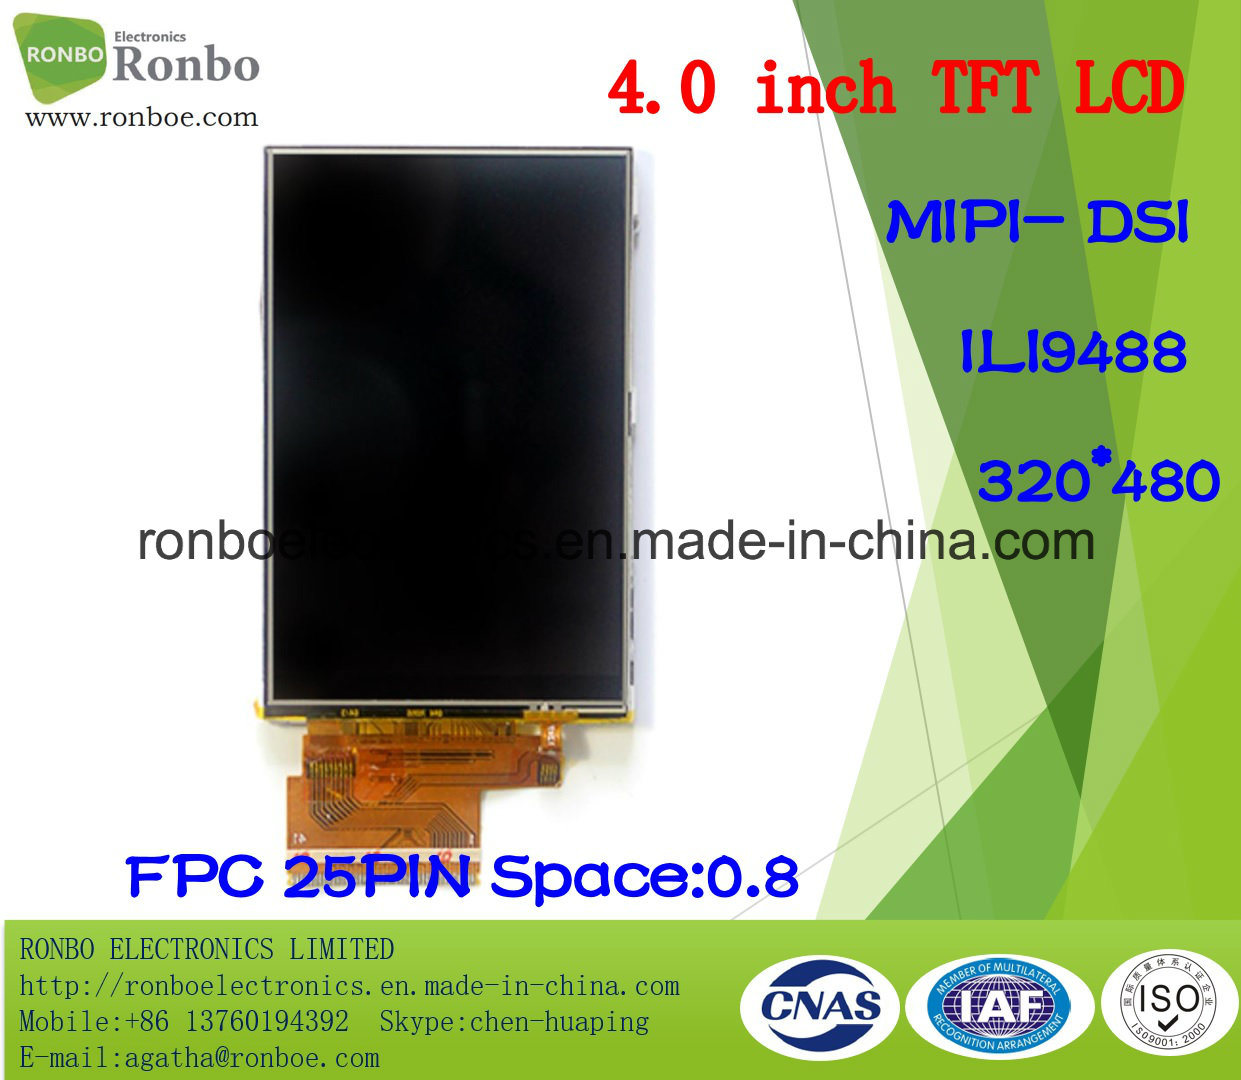 "4.0"" 320X480 Mipi TFT LCD Module, Ili9488, 25pin for POS, Doorbell, Medical"